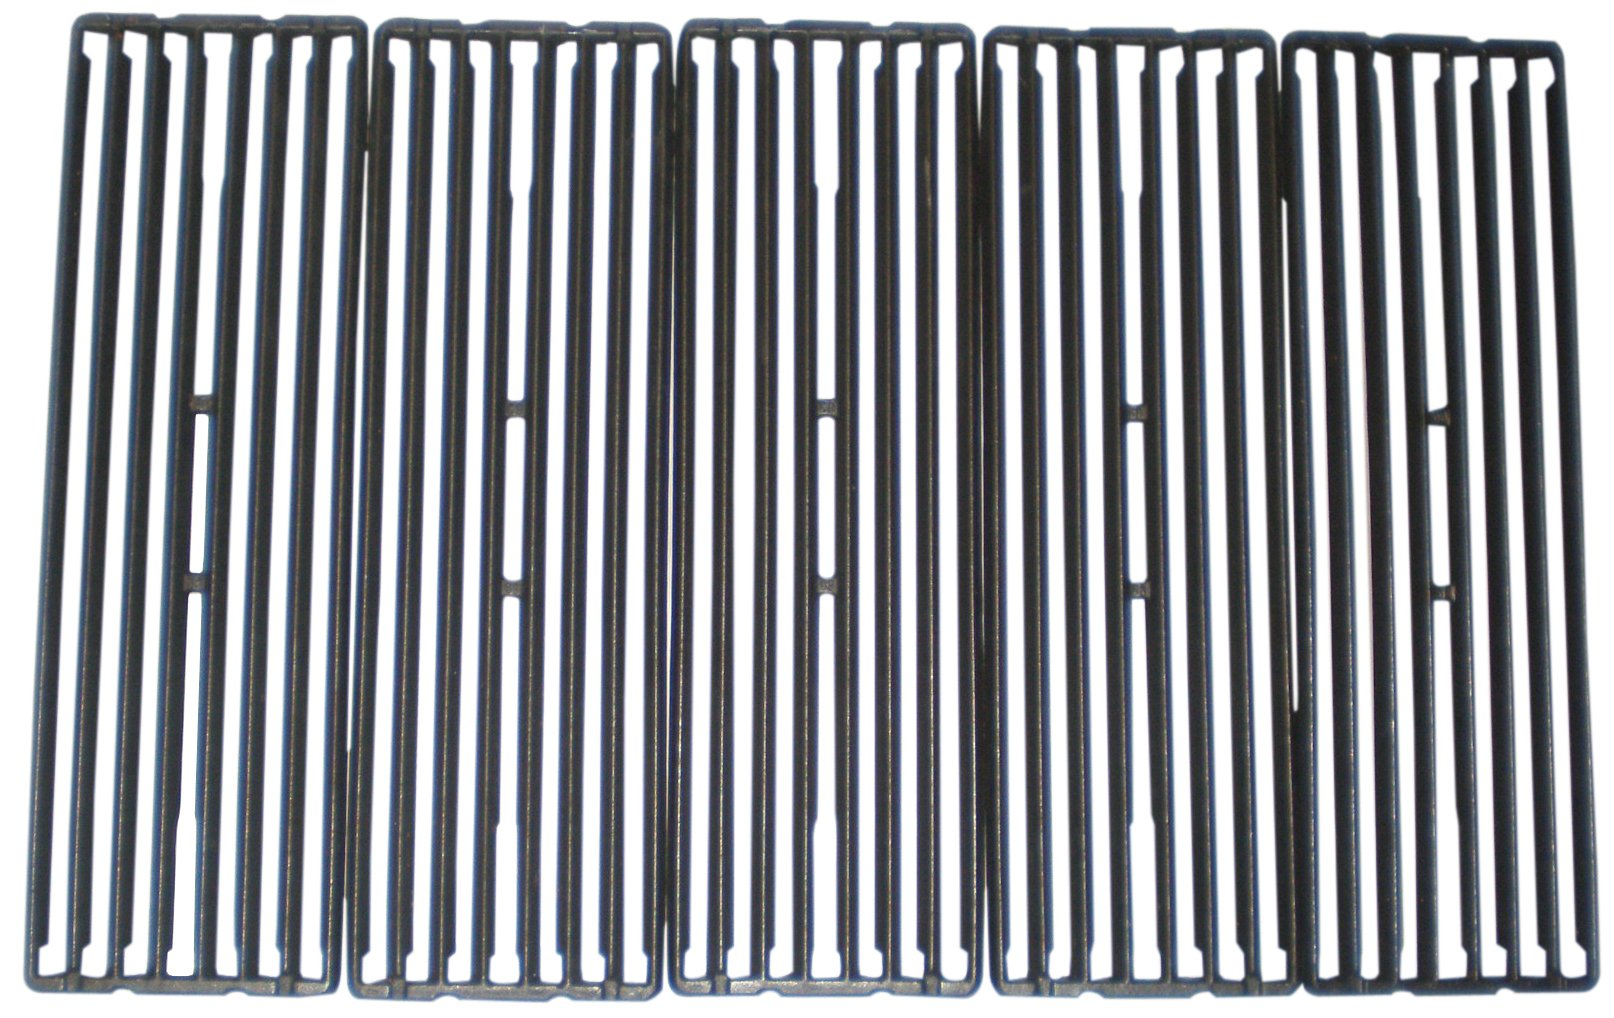 Music City Metals 67845 Matte Cast Iron Cooking Grid Replacement for Select Gas Grill Models by Broil King, Huntington and Others, Set of 5